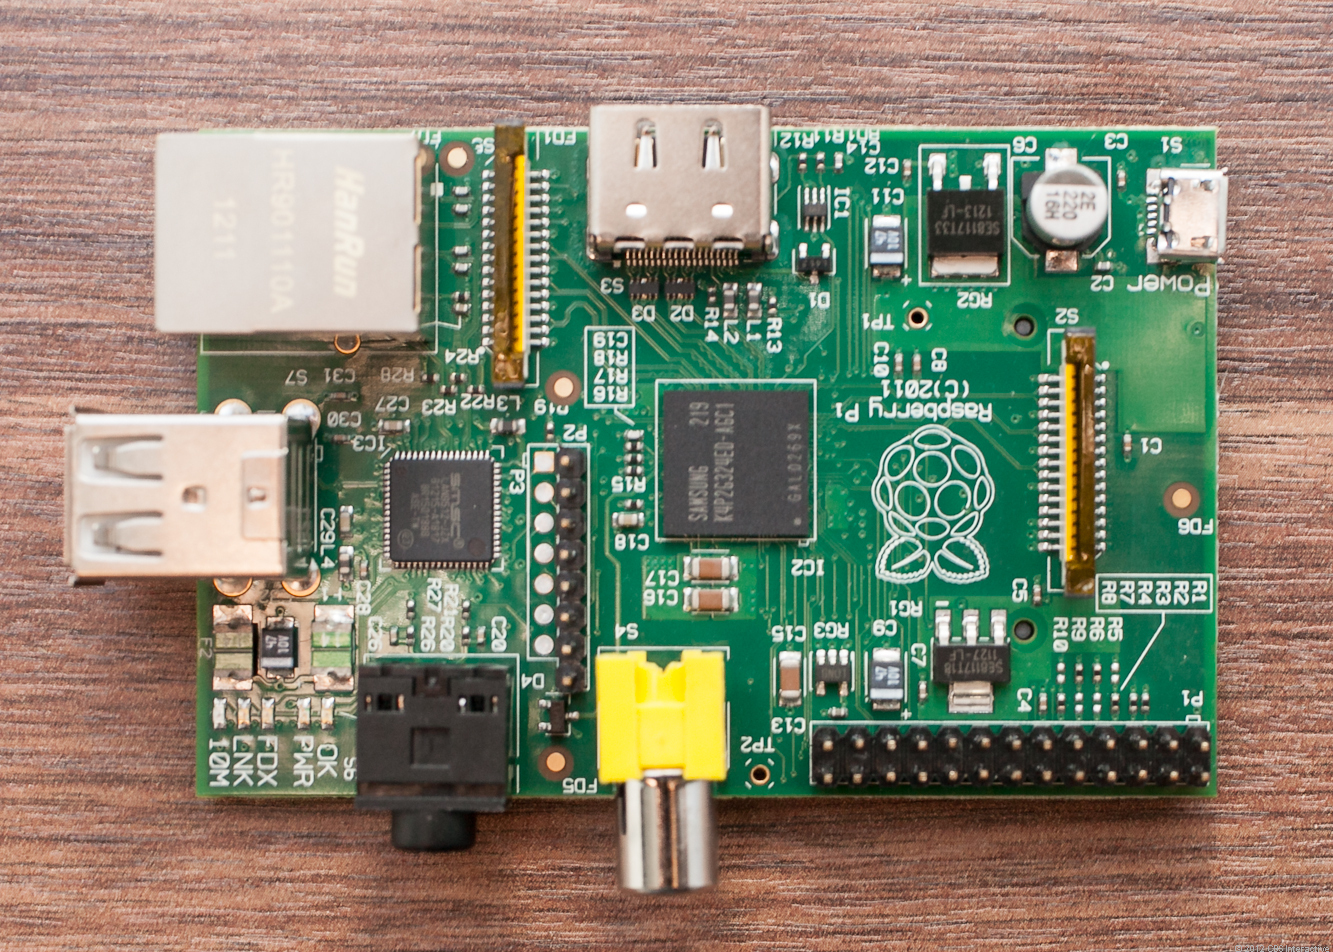 In the middle of the Raspberry Pi, the Broadcom BCM2835 system-on-a-chip.